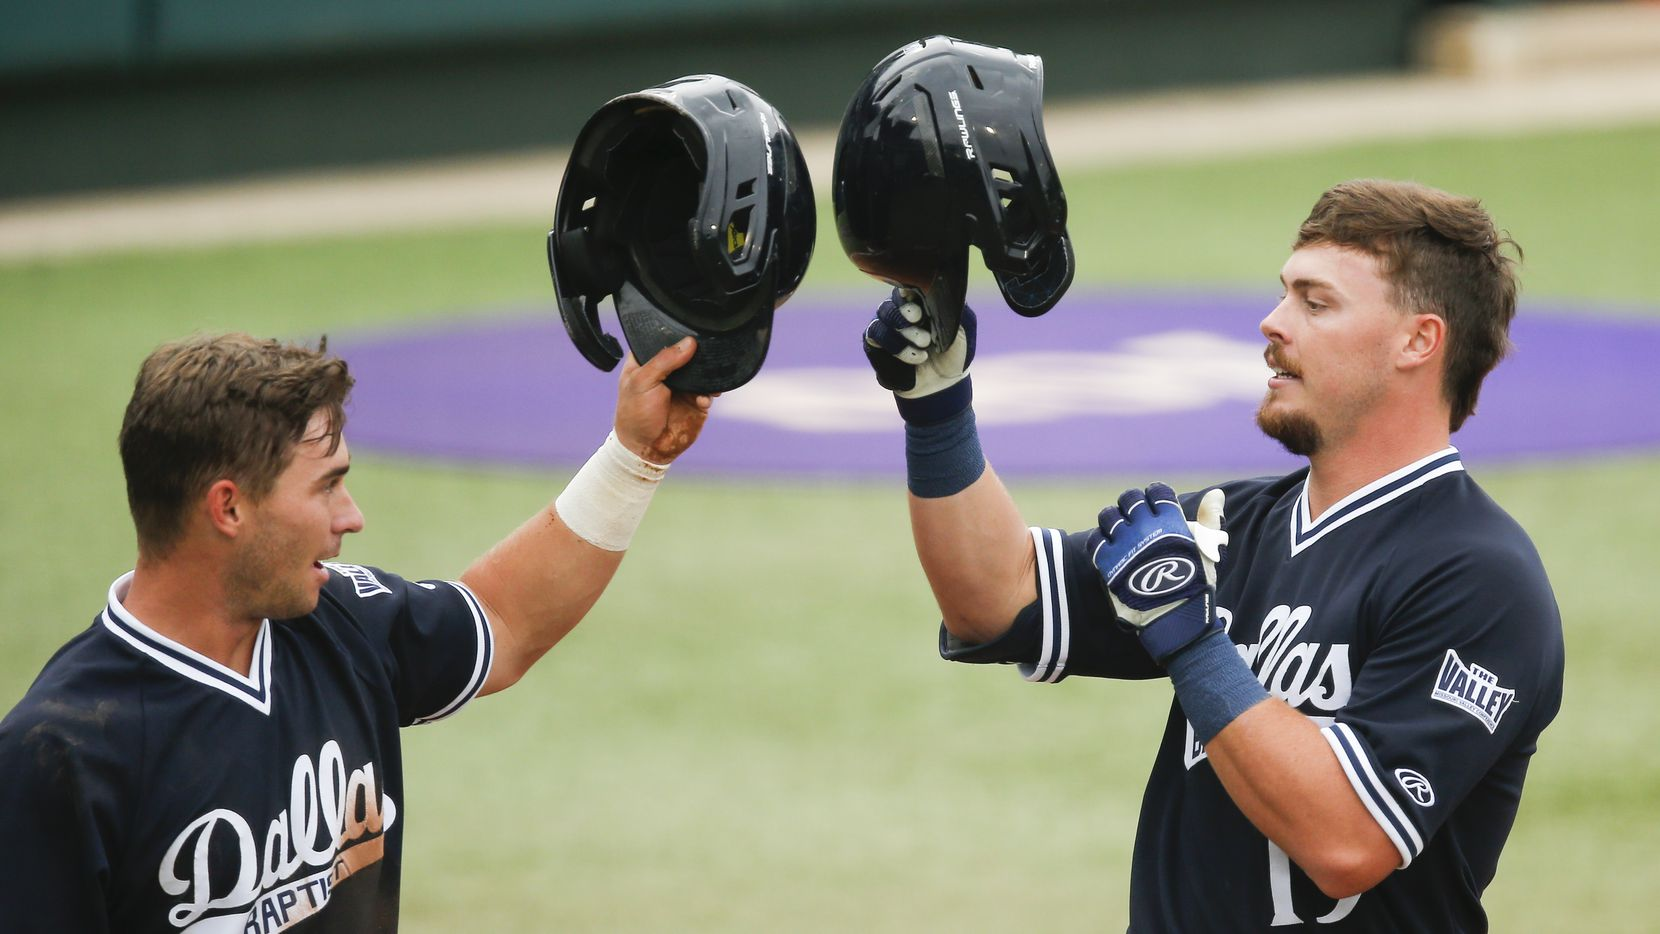 DBU's Cole Moore, right, is congratulated by Jackson Glenn (3) after hitting a two-run home run in the first inning during the NCAA Fort Worth Regional baseball tournament against Oregon State at TCU's Lupton Stadium in Fort Worth, Friday, June 4, 2021. Dallas Baptist won 6-5. (Brandon Wade/Special Contributor)